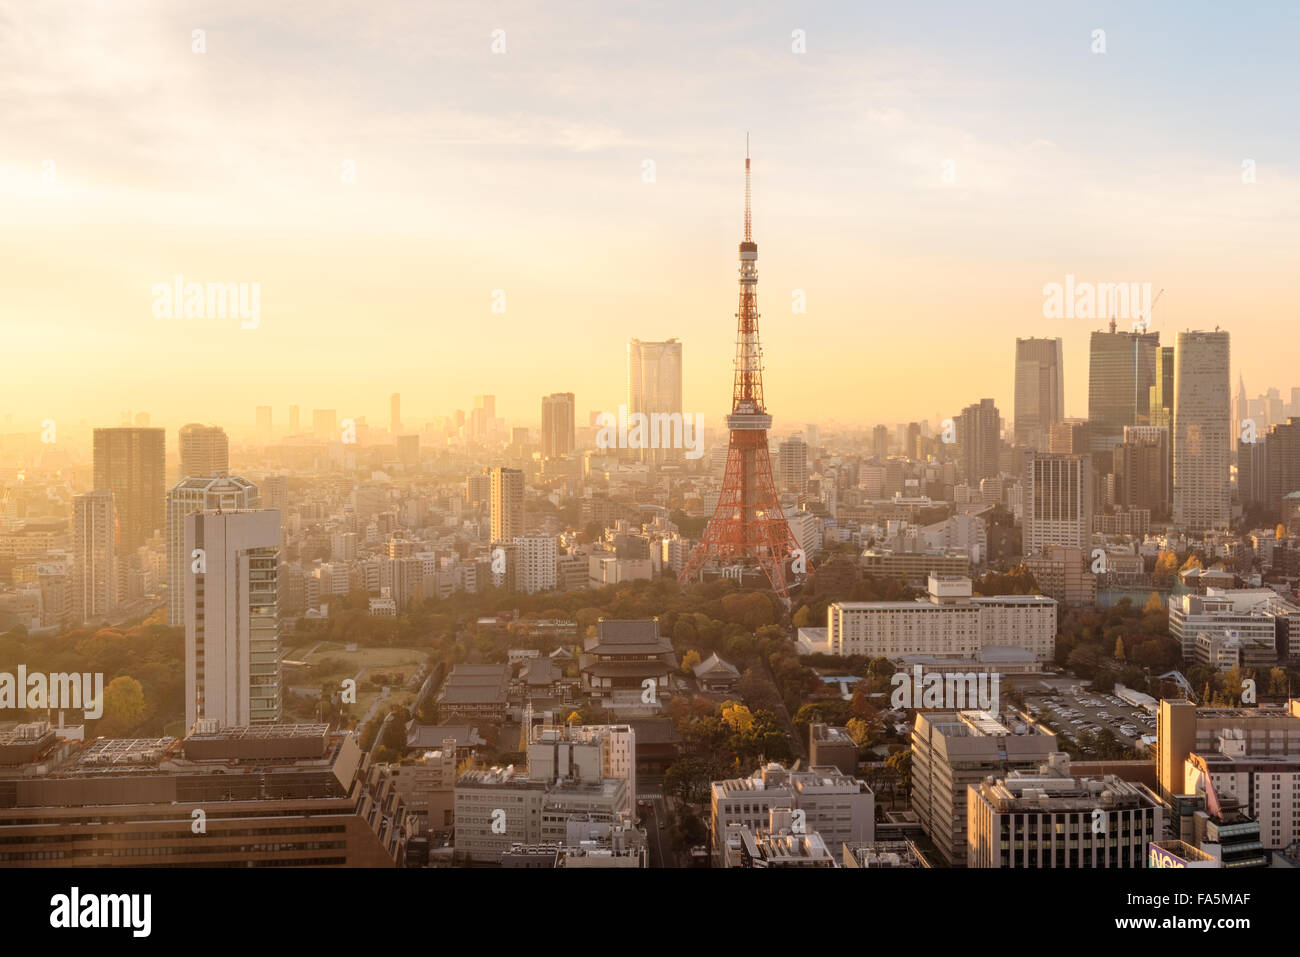 Tokyo, Japan - Dec 12, 2015: Night view of Tokyo Skylines.Tokyo  is both the capital and largest city of Japan. - Stock Image